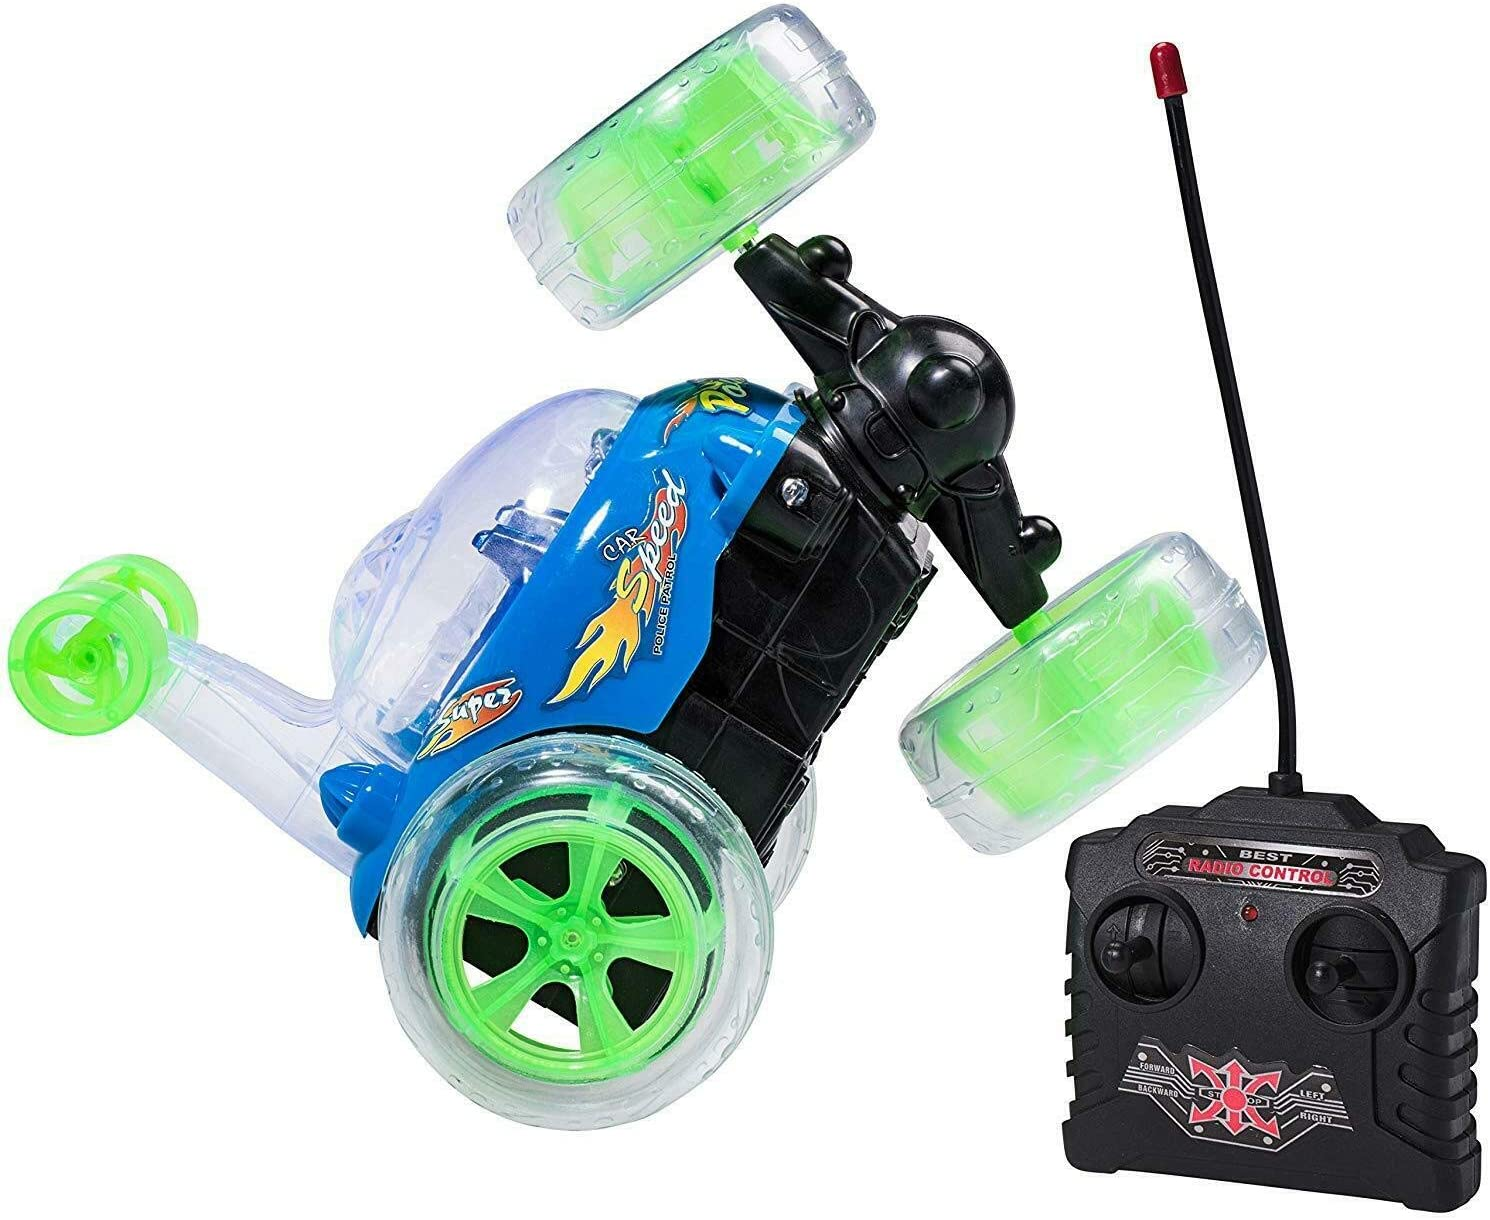 Top Race Control remoto RC Car Cyclone Twister RC niños juguete Stunt Car con luces LED y sonido musical - 49 MHz